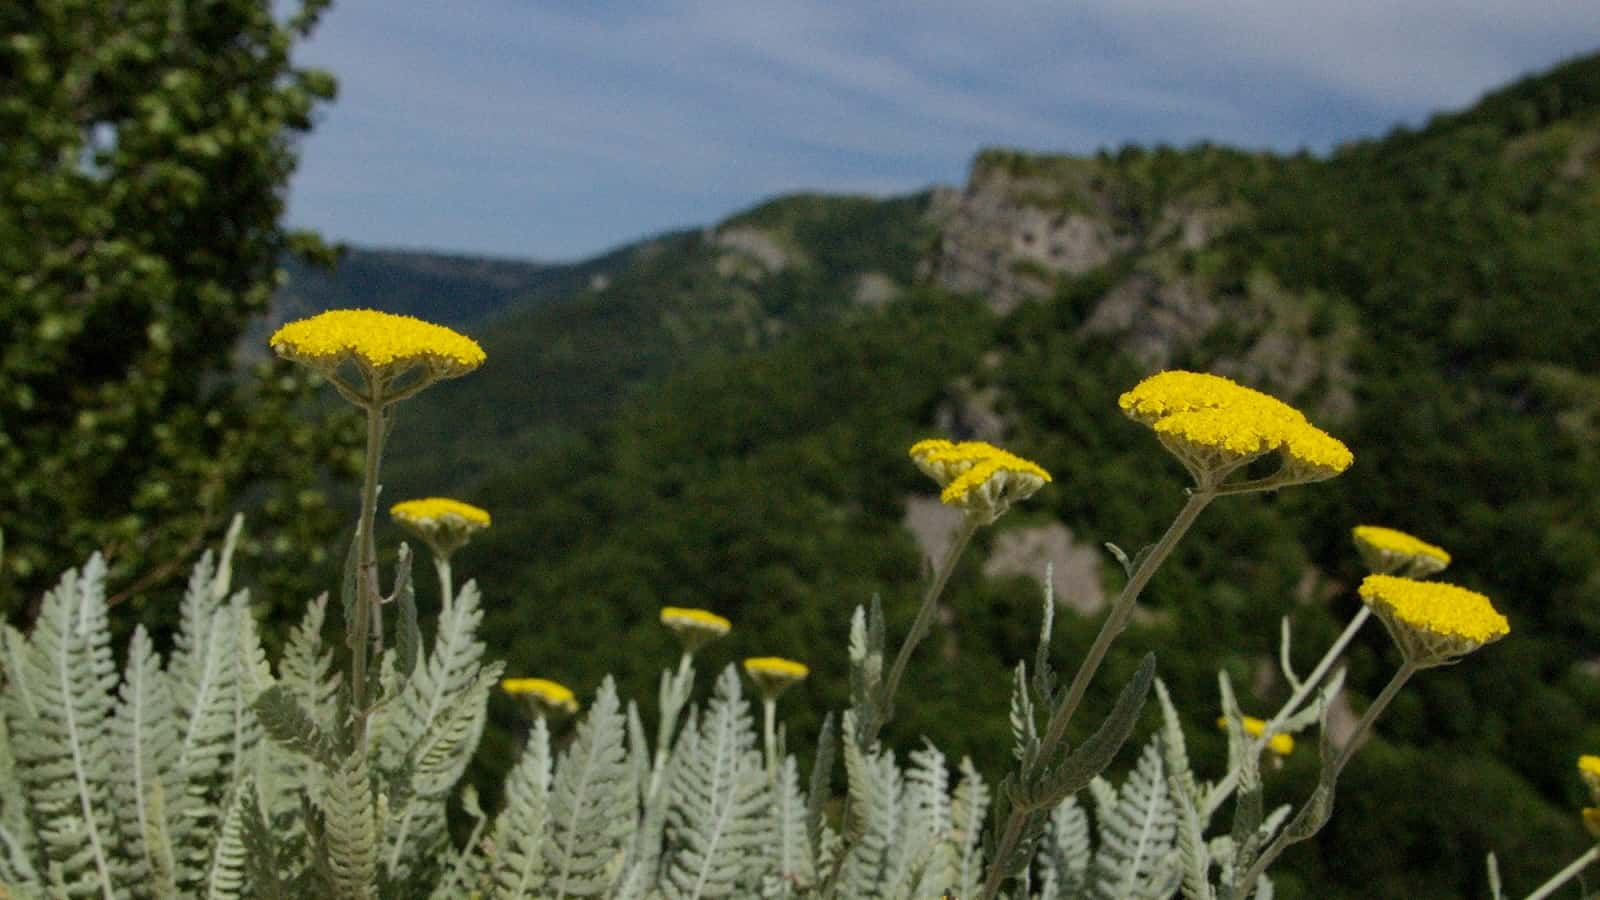 Moonshine yarrow (Achillea clypeolata), endemic to the Balkan peninsula - Photo: Vrachanski Balkan Nature Park, Krasimir Lakovski